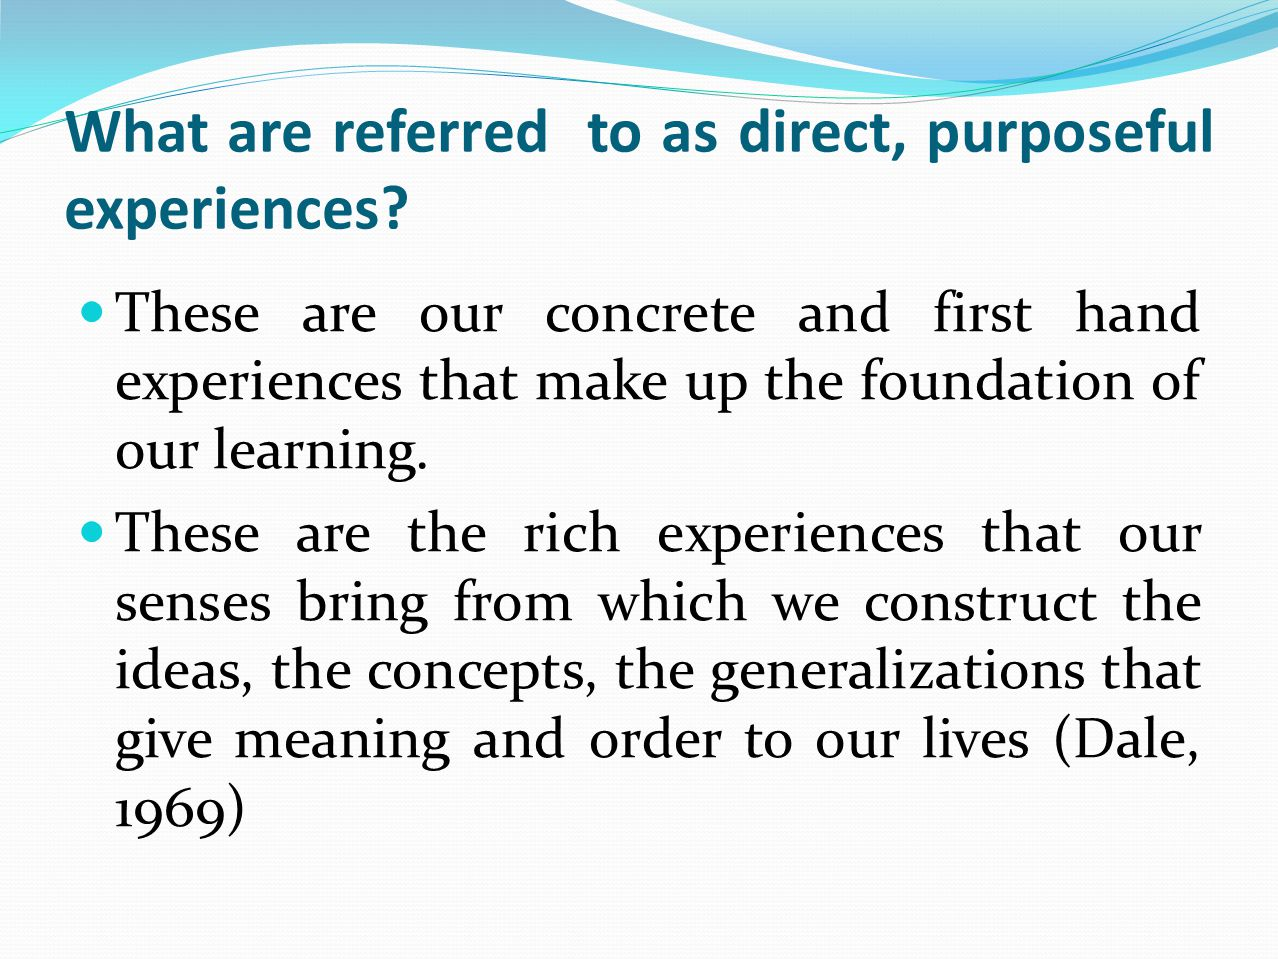 What are referred to as direct, purposeful experiences? These are our concrete and first hand experiences that make up the foundation of our learning.